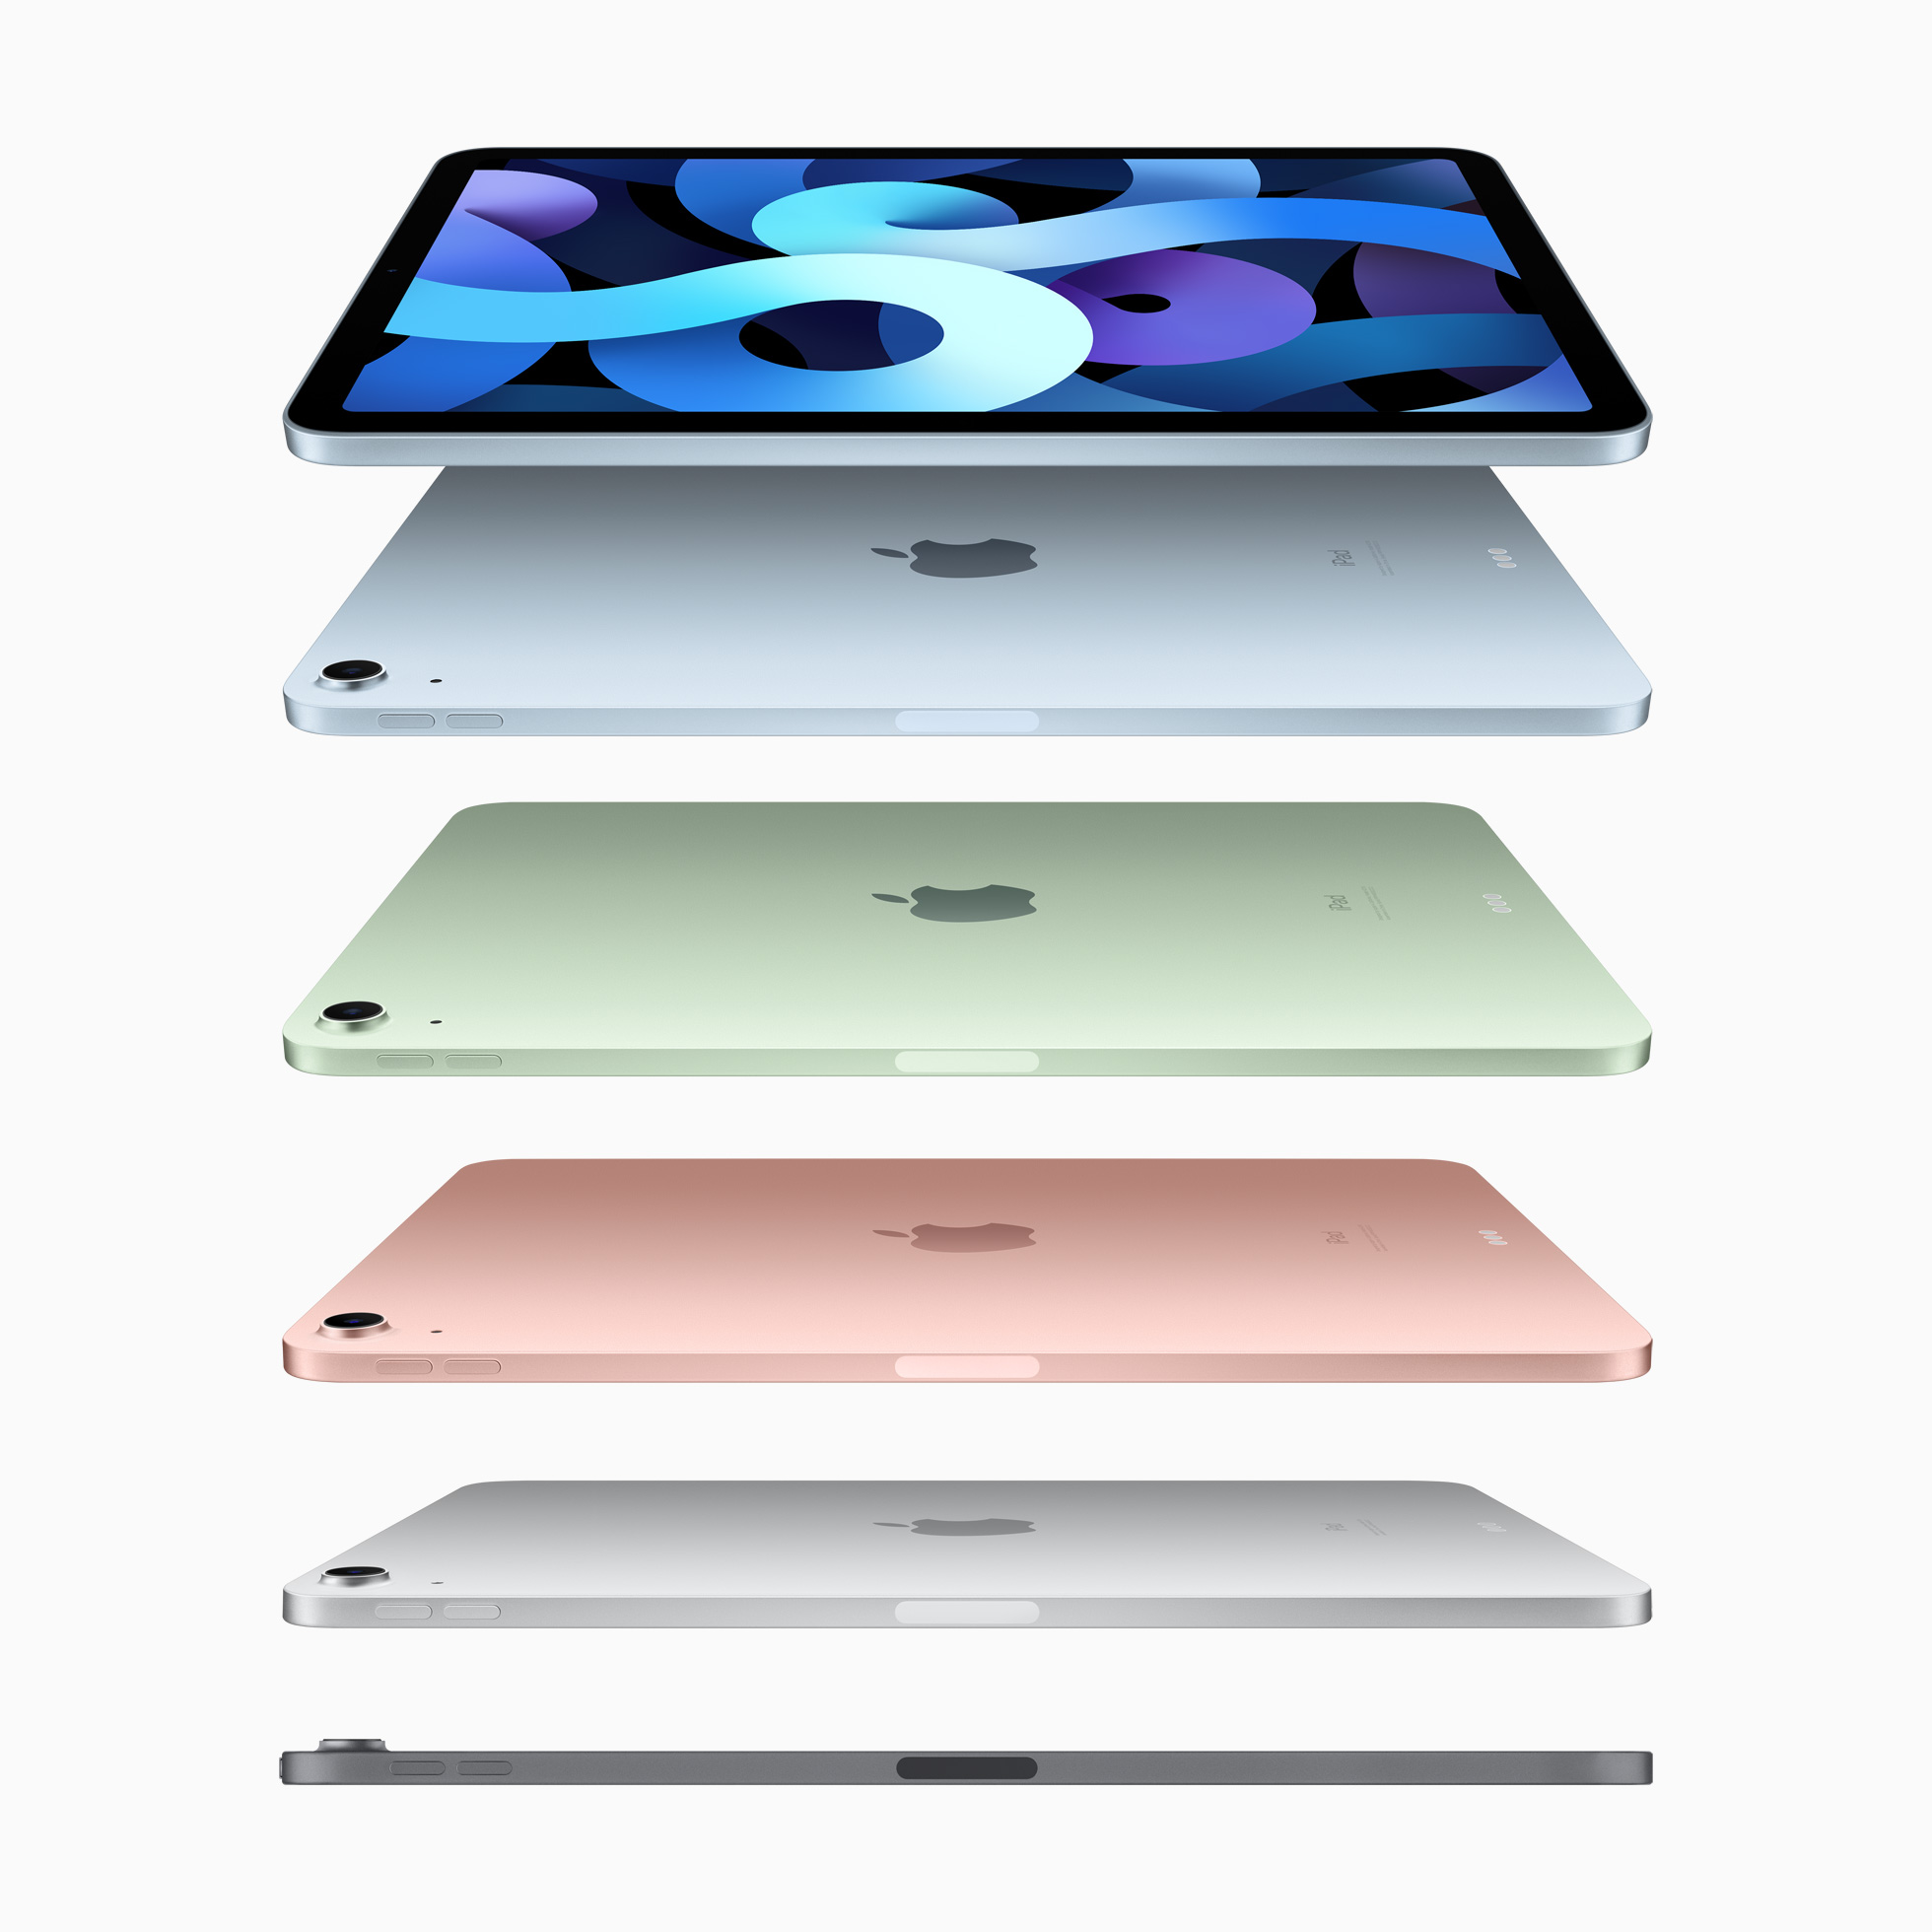 apple_new-ipad-air_new-design_09152020_big.jpg.large_2x.jpg